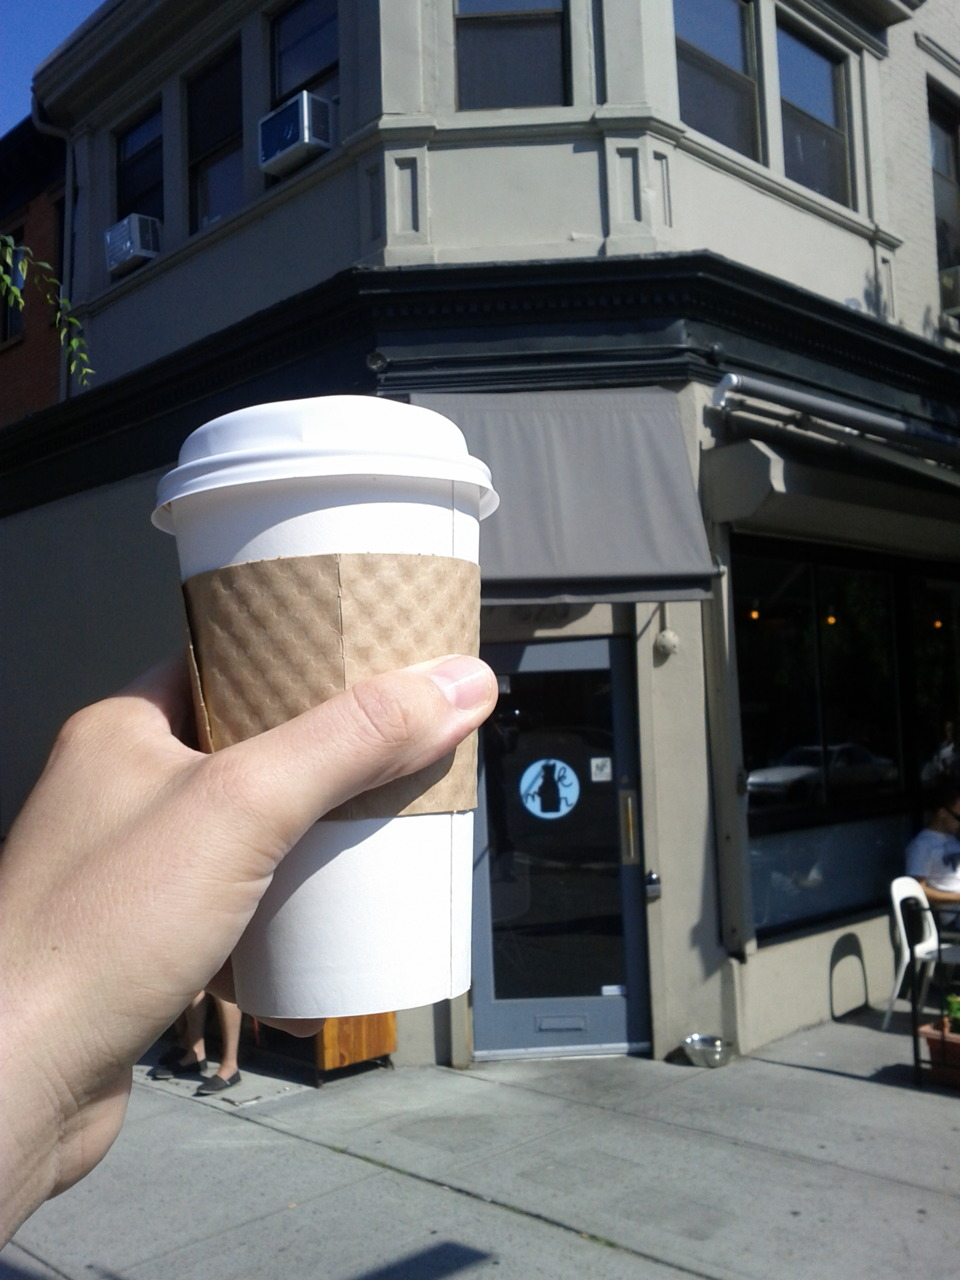 Mawnin' coffee from Milk Bar in Prospect Heights. $2.75 never tasted so good!